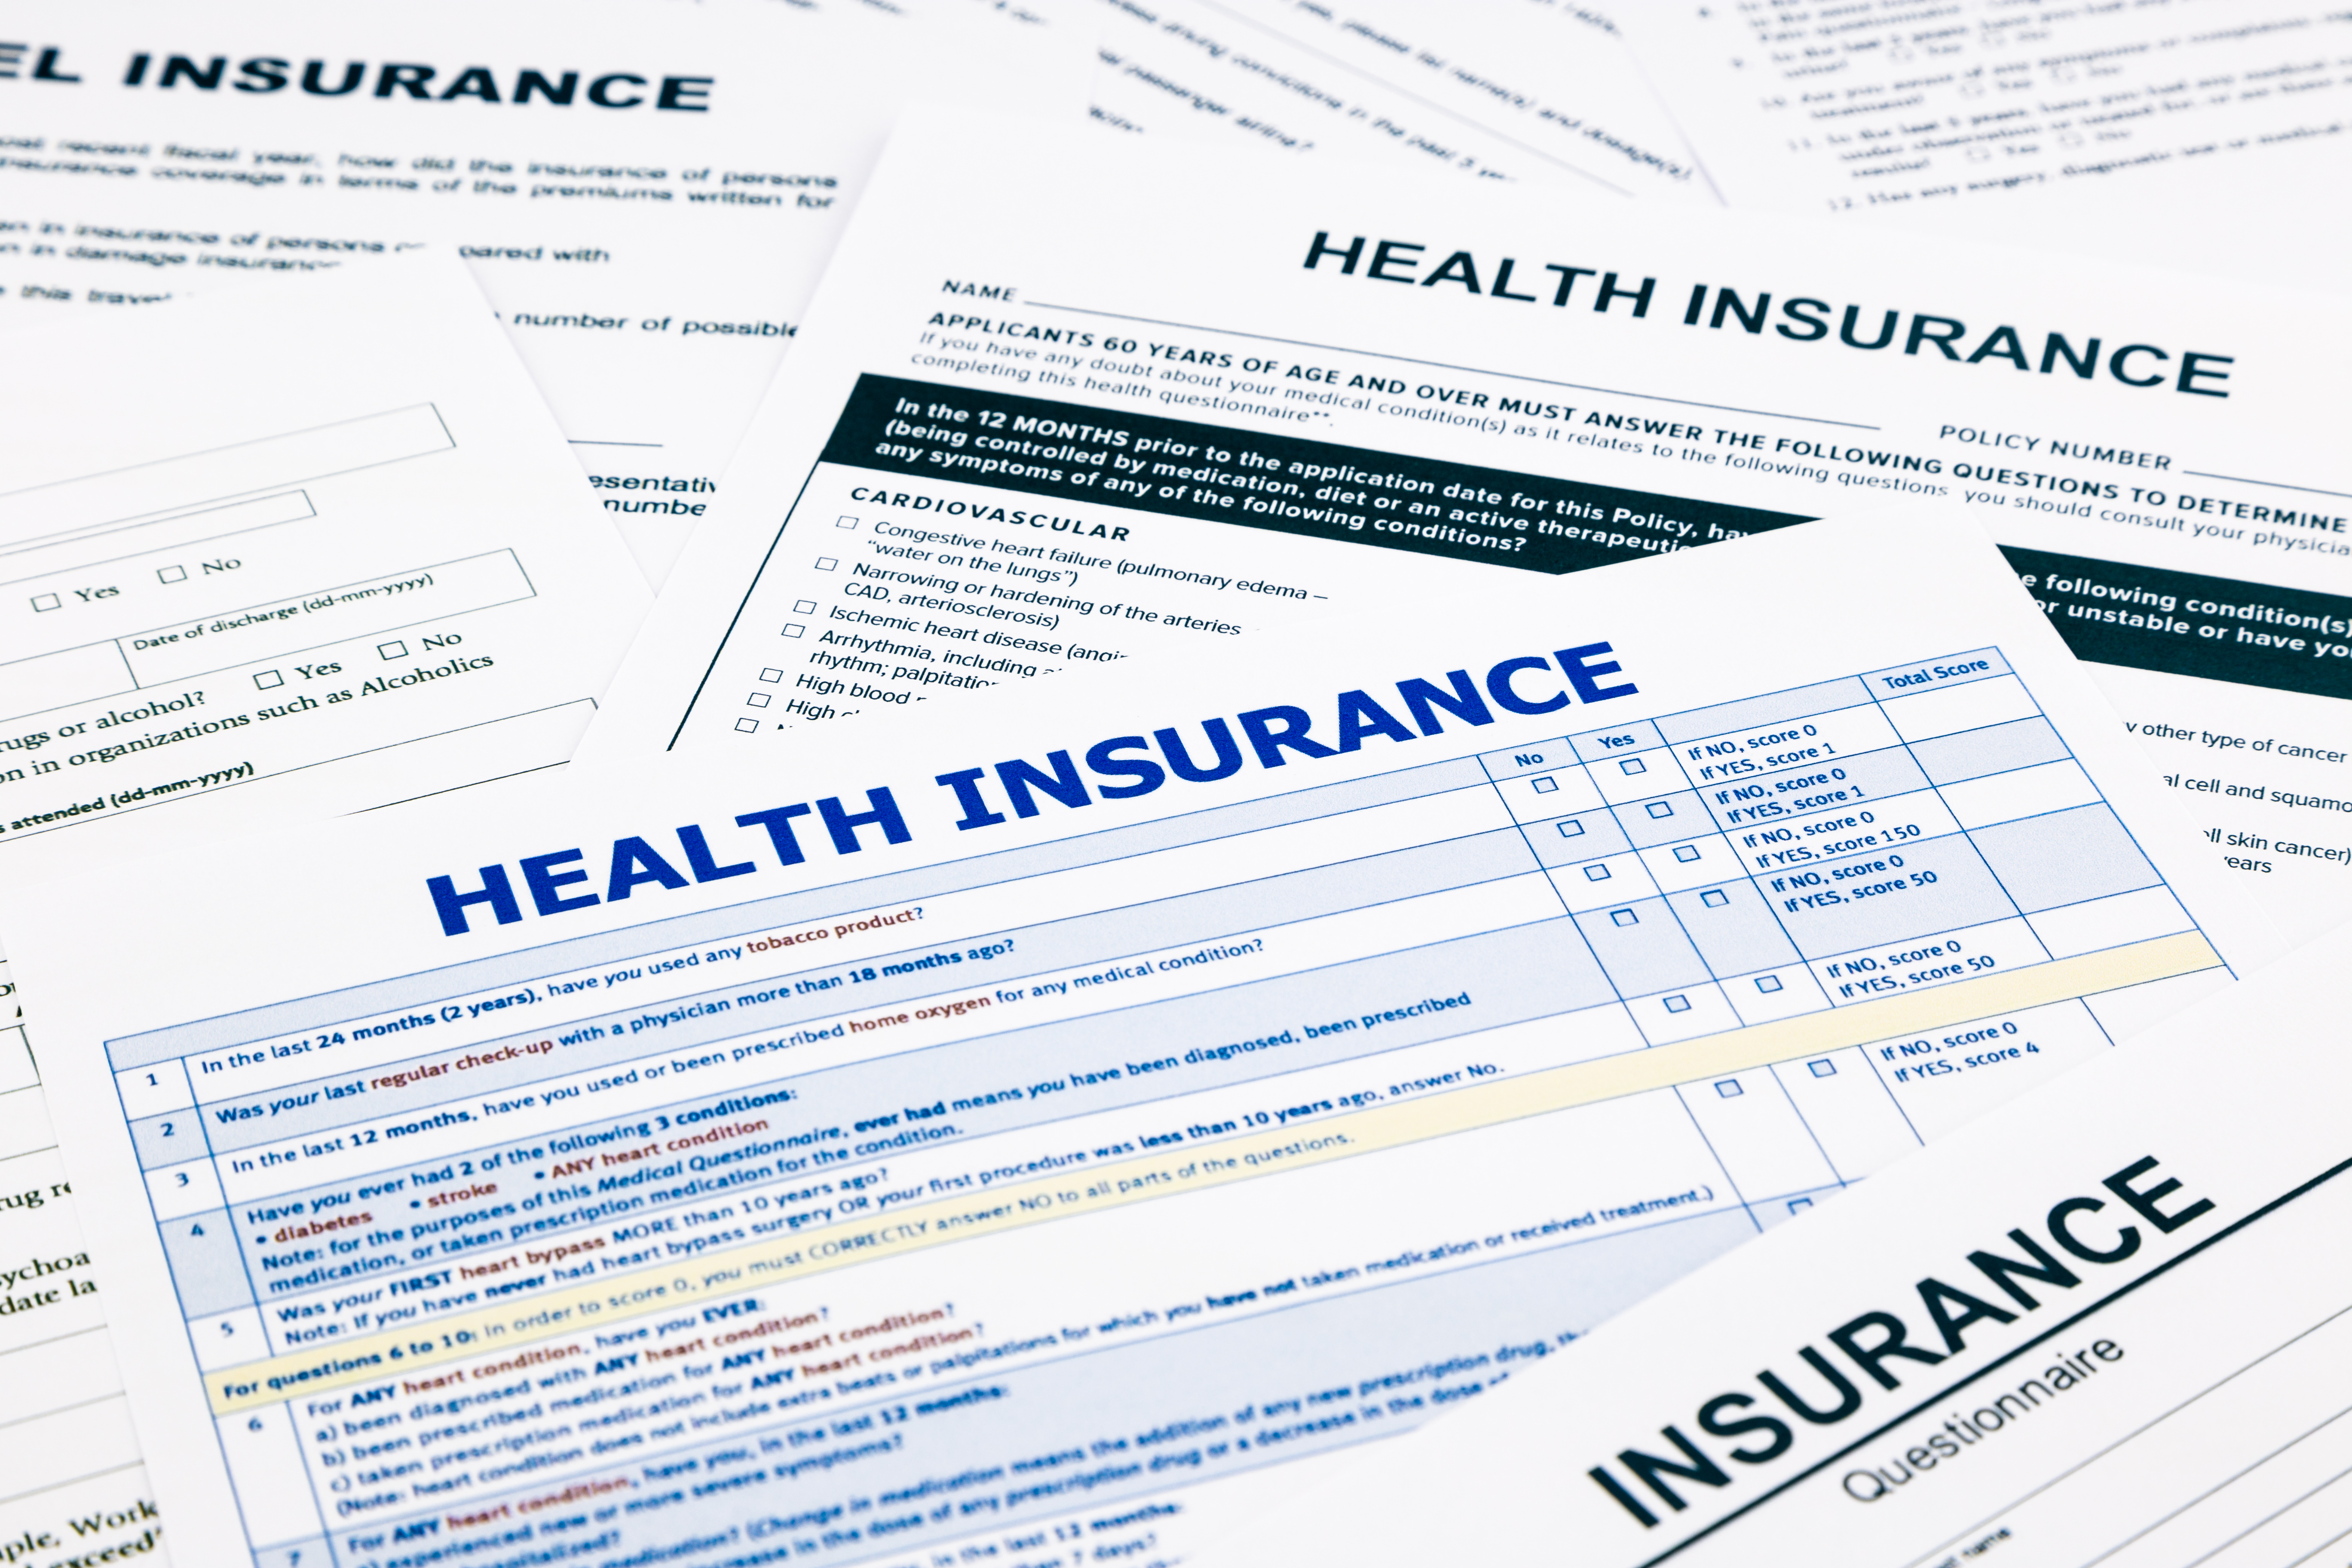 Skimpy Health Plans Put Consumers, Insurance Markets at ...